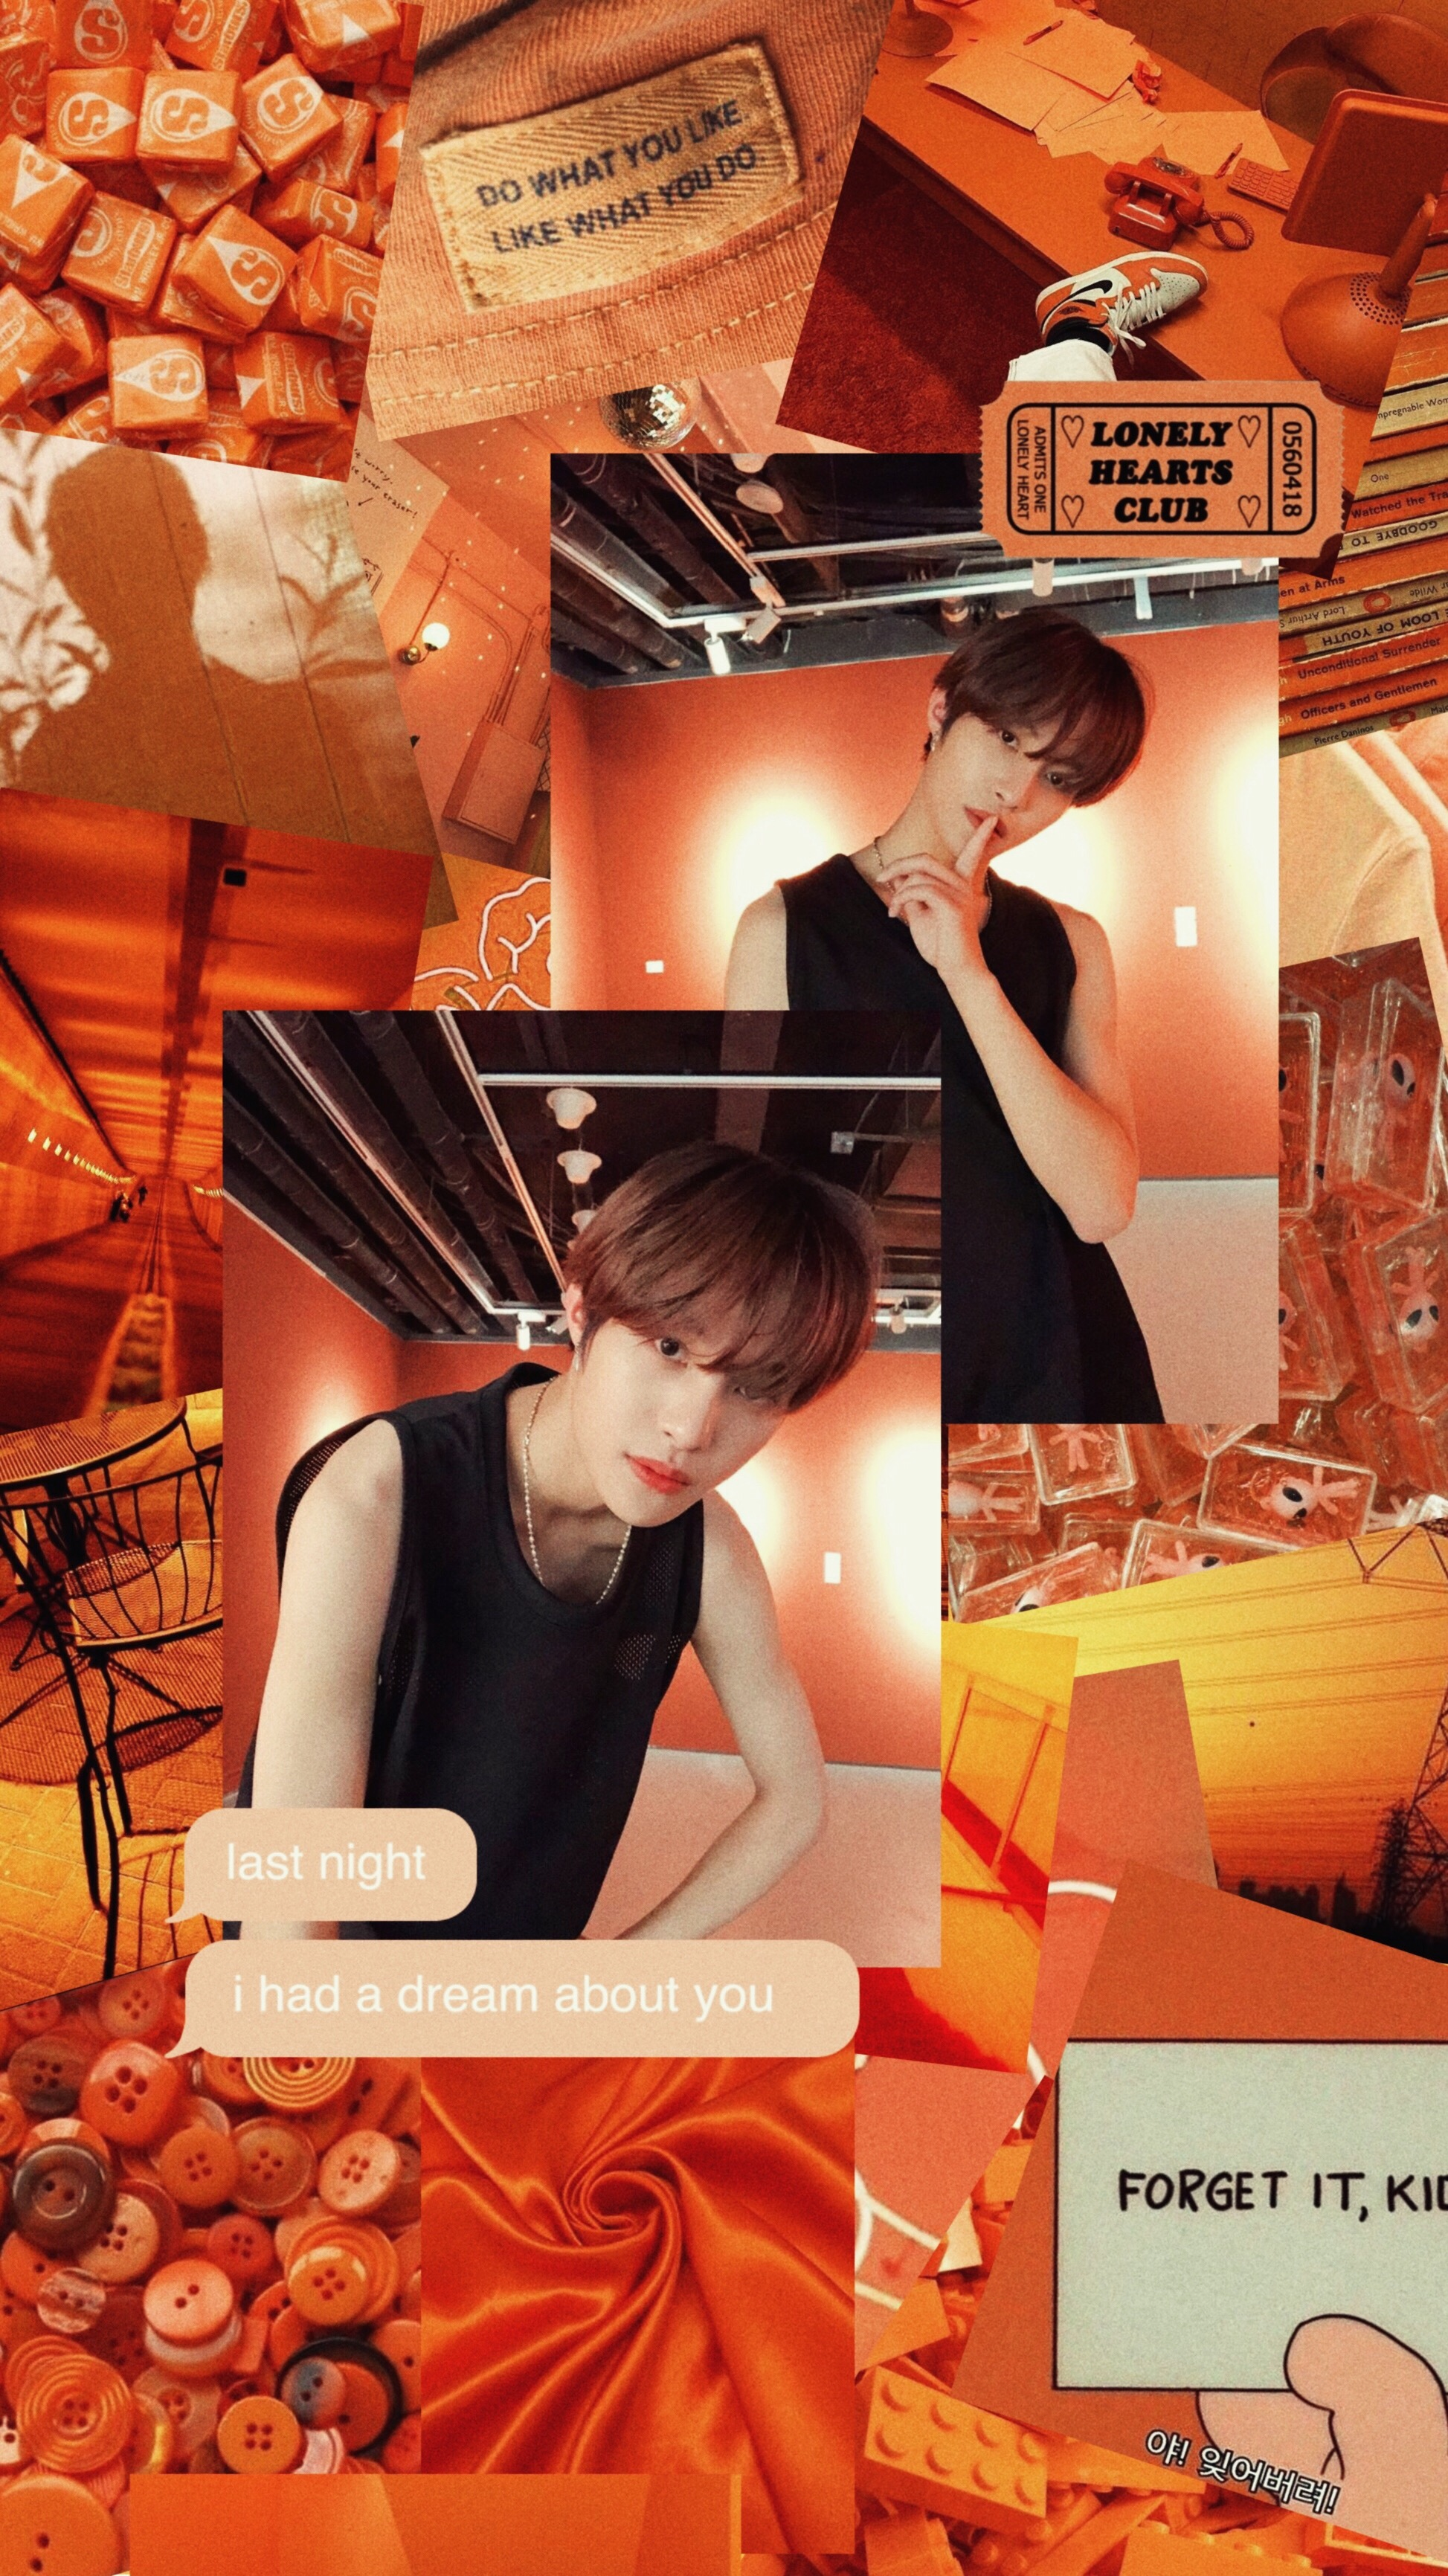 Yangyang Nct Image By 𝒆𝒊𝒈𝒉𝒕 𝒐𝒓 𝒏𝒐𝒏𝒆